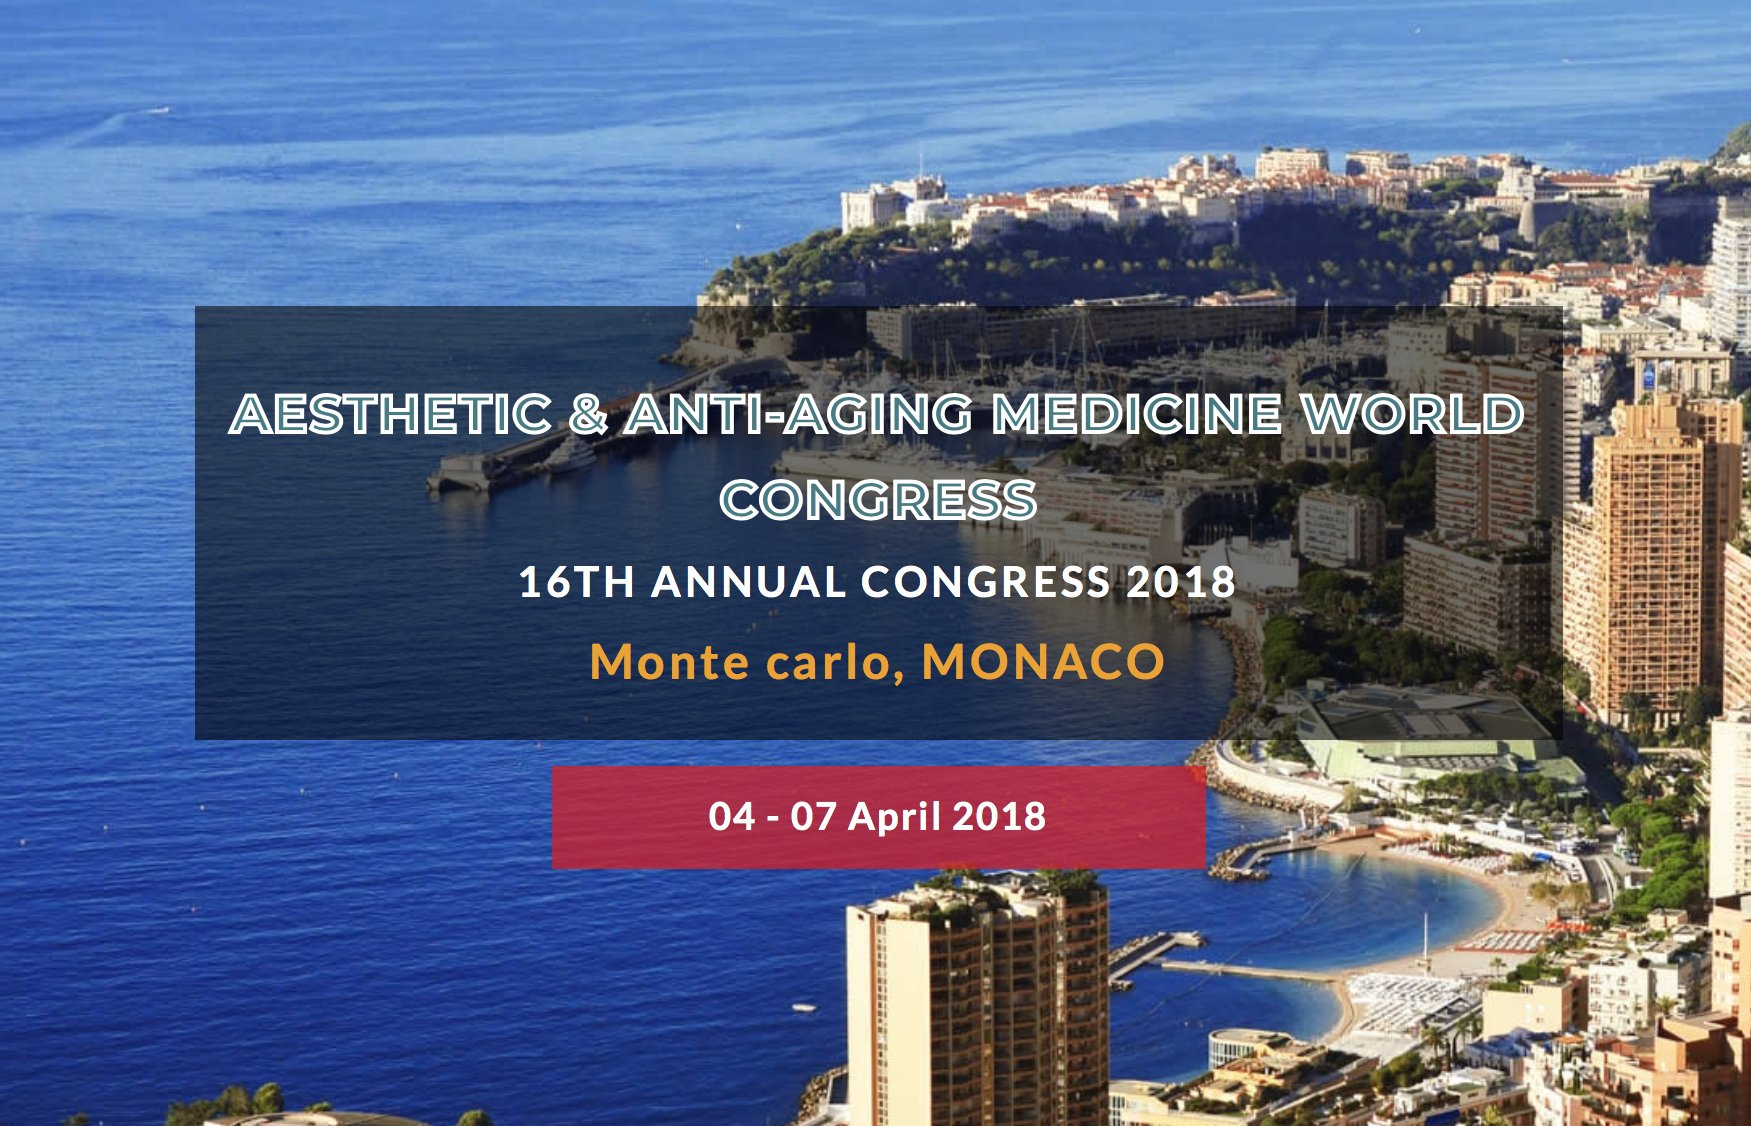 Aesthetic and Antiaging Medicine World Congress 2018 | 04.04.18